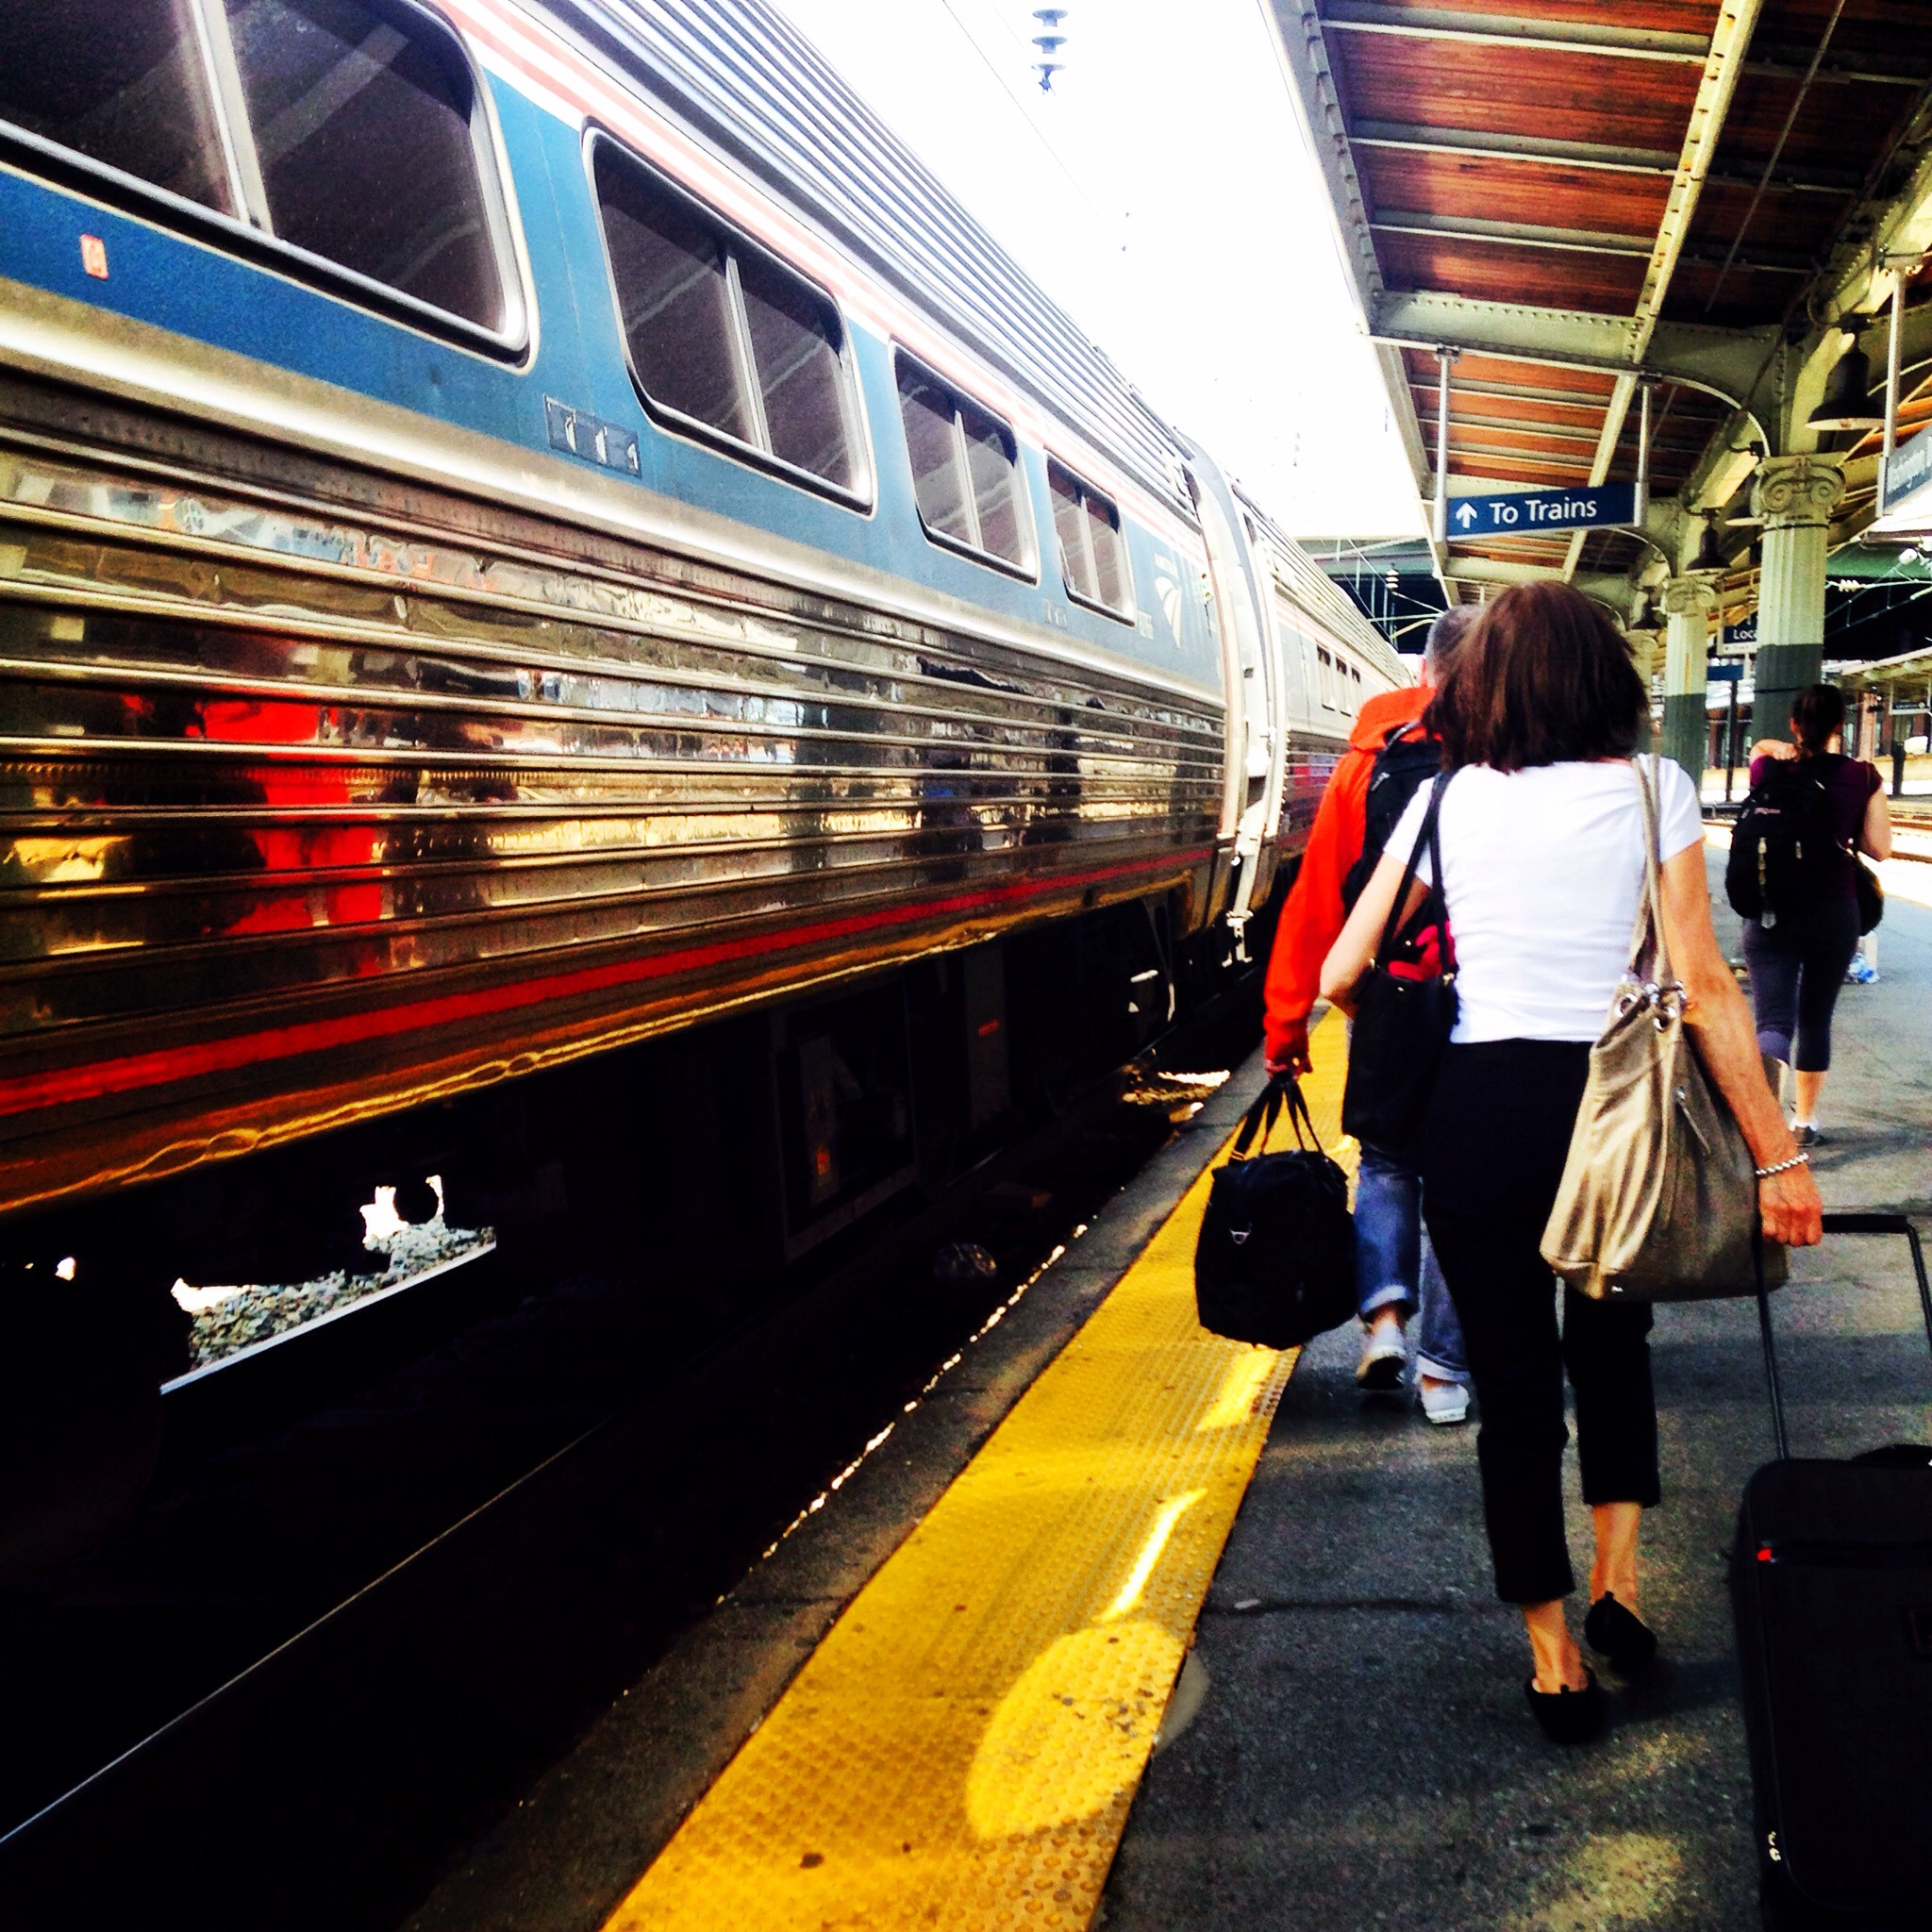 Catching the train to Baltimore, MD before heading out